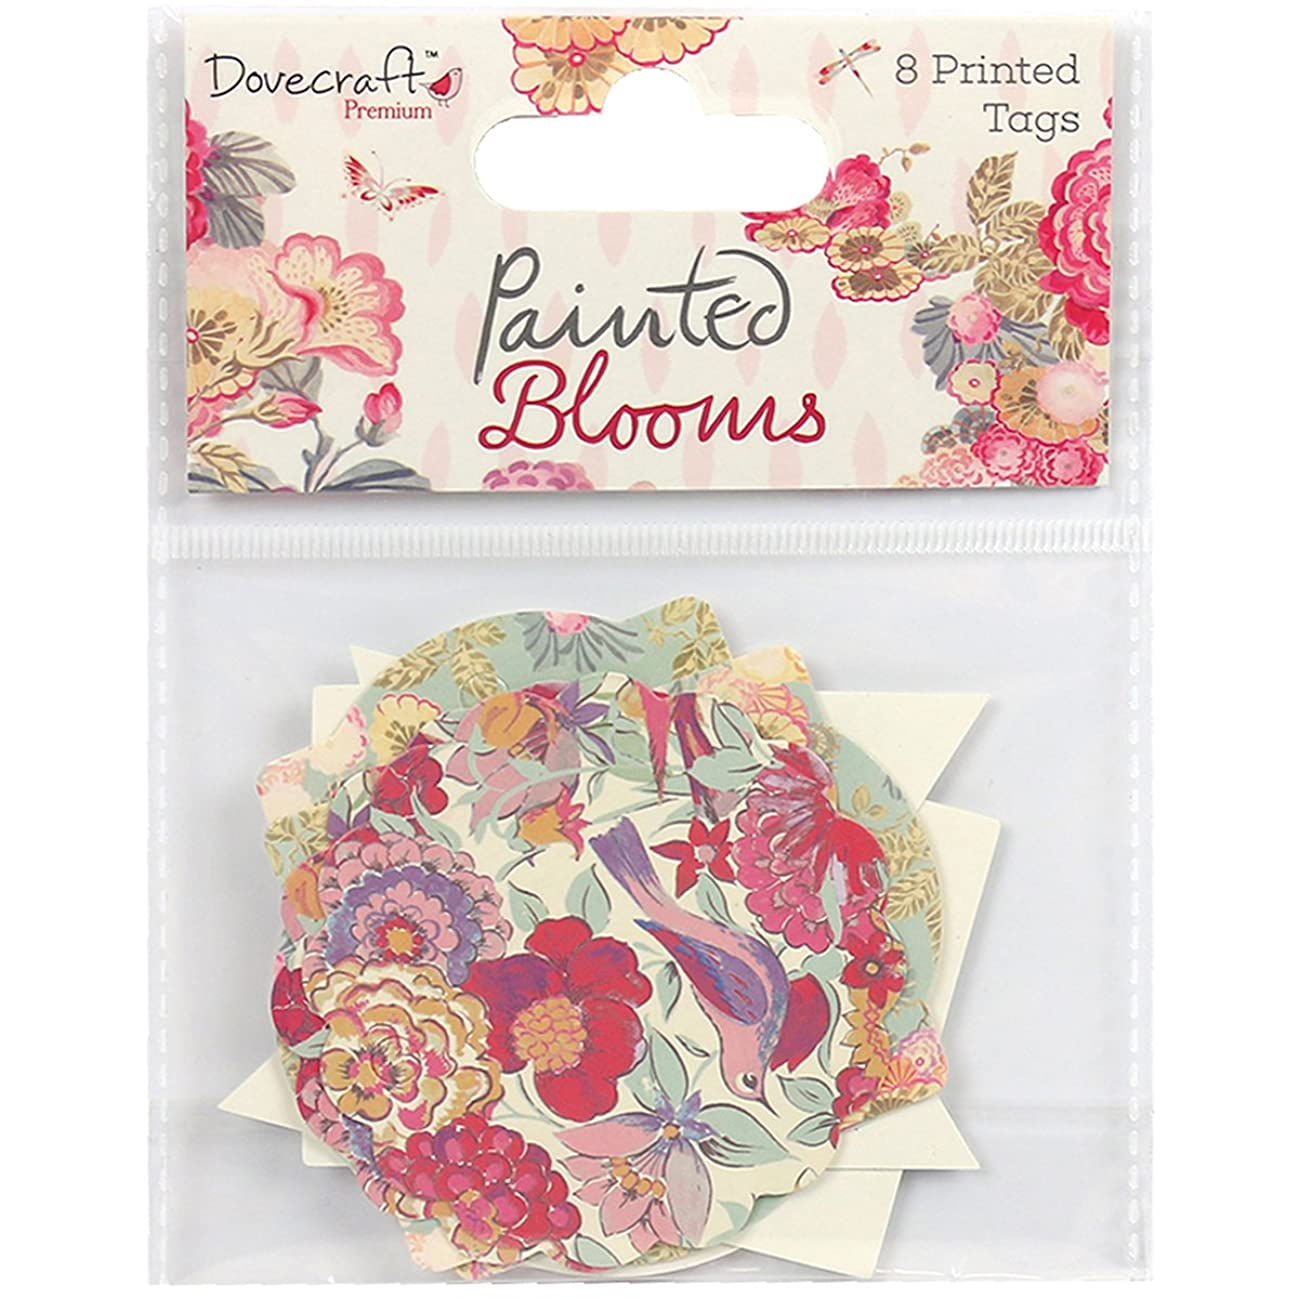 Trimcraft DCTOP045 Dovecraft Painted Blooms Cardstock Tags 8/Pkg